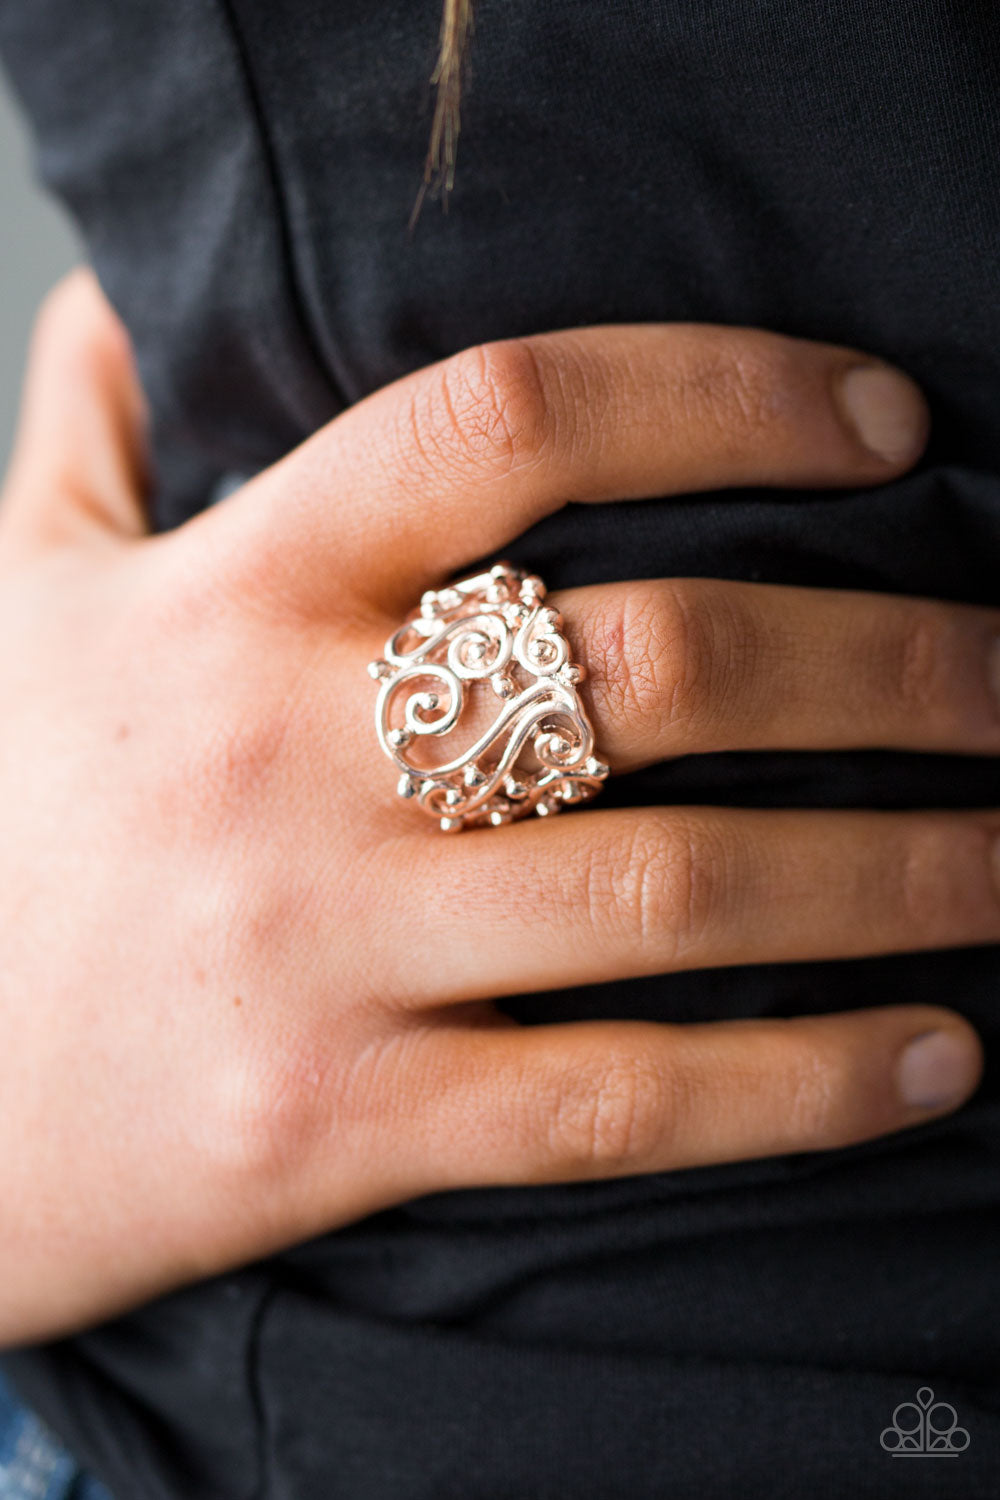 Glistening rose gold bars swirl across the finger, creating airy filigree. Shiny rose gold studs are sprinkled across the frilly pattern, adding tactile shimmer to the regal pattern. Features a stretchy band for a flexible fit.   Sold as one individual ring.   Always nickel and lead free.